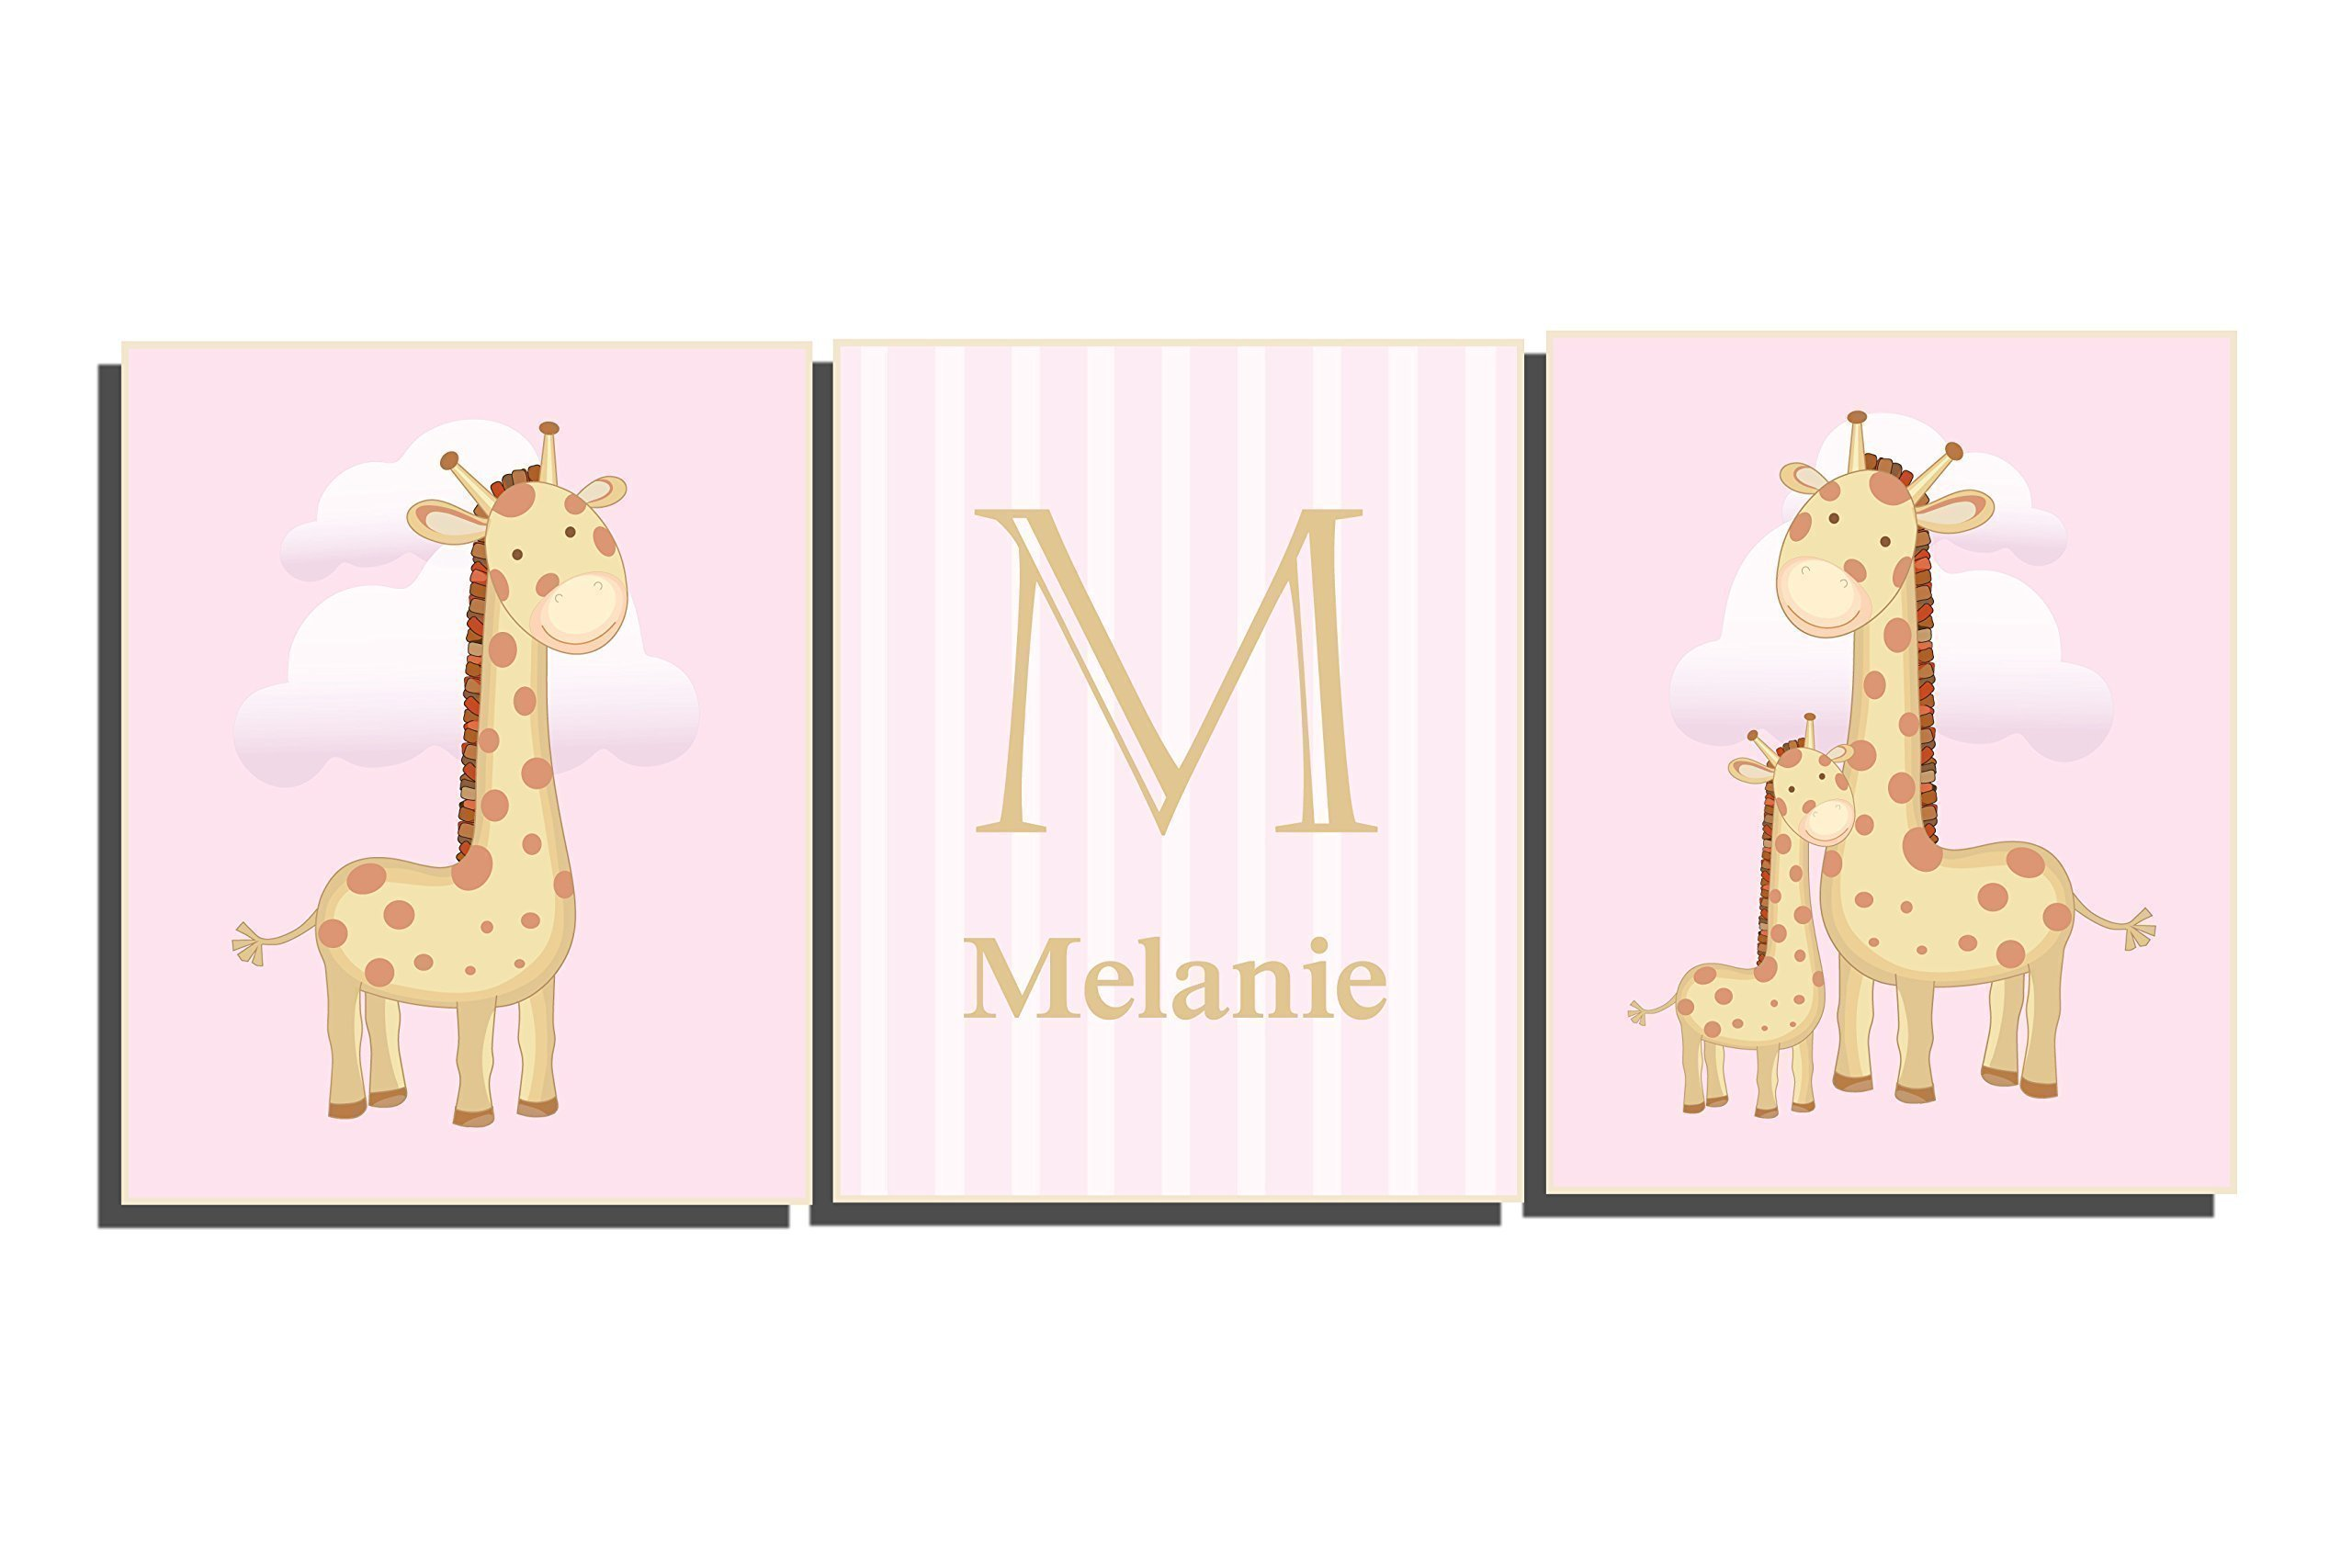 Baby Girl Nursery Wall Letters Customize Name Initial Pink Brown Tan Art Set of 3 Unframed Prints Giraffe Pictures 8 x 10 inch